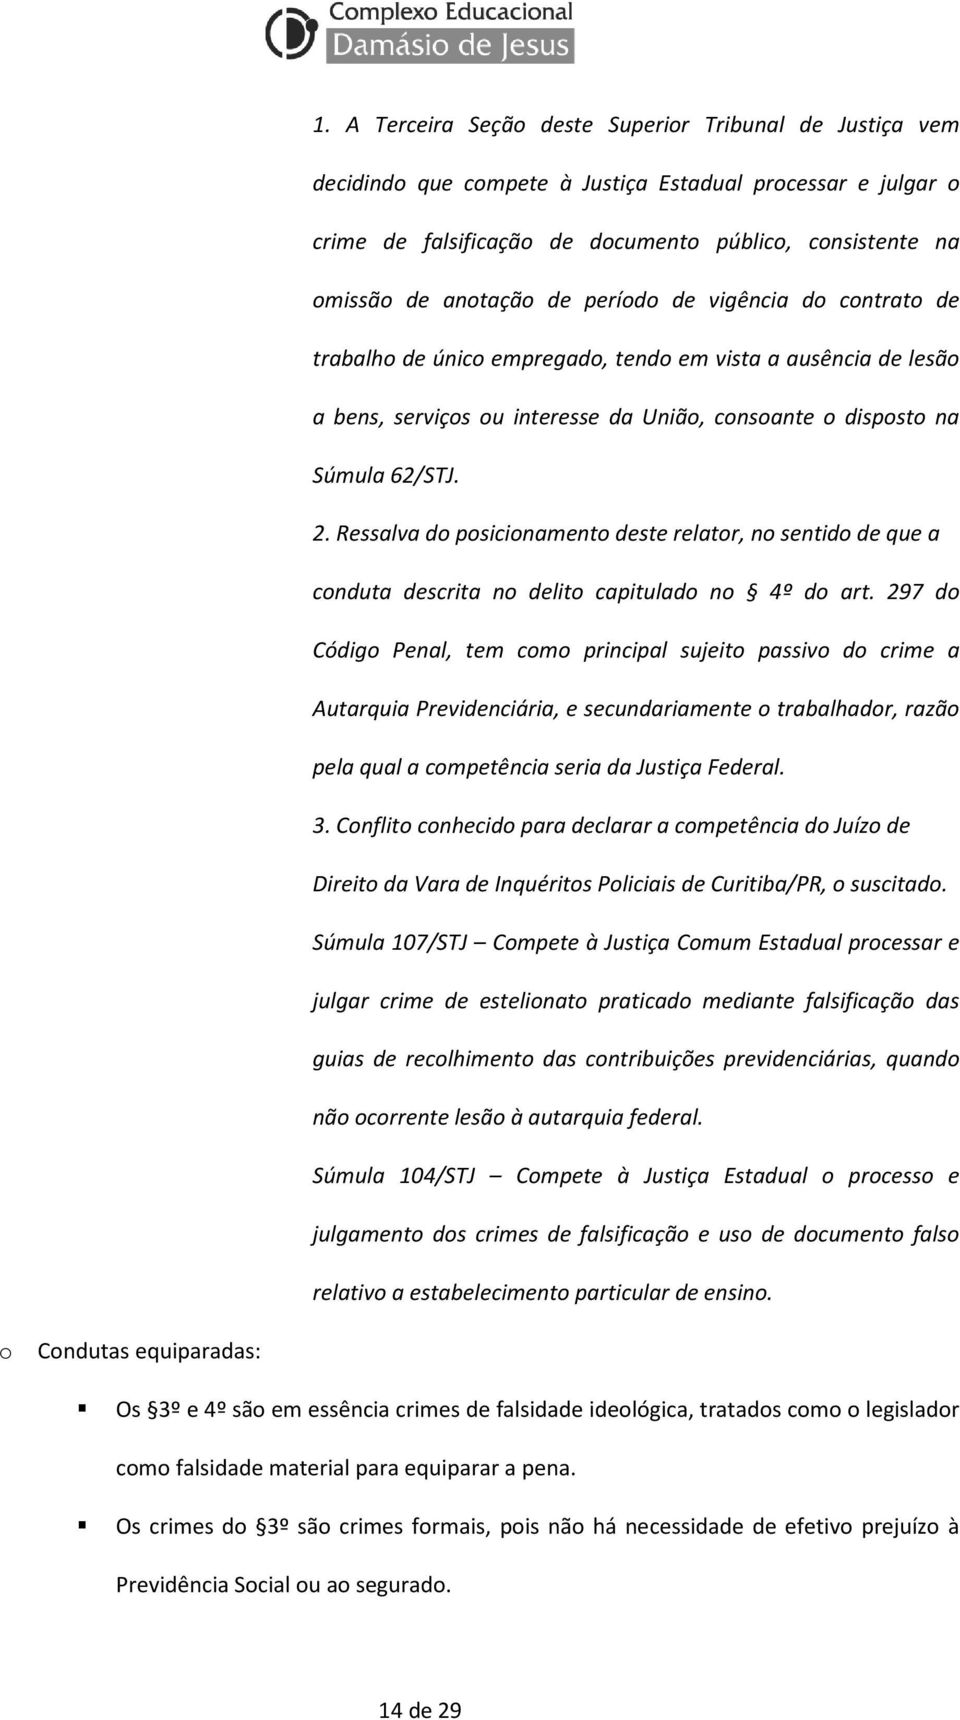 Ressalva do posicionamento deste relator, no sentido de que a conduta descrita no delito capitulado no 4º do art.